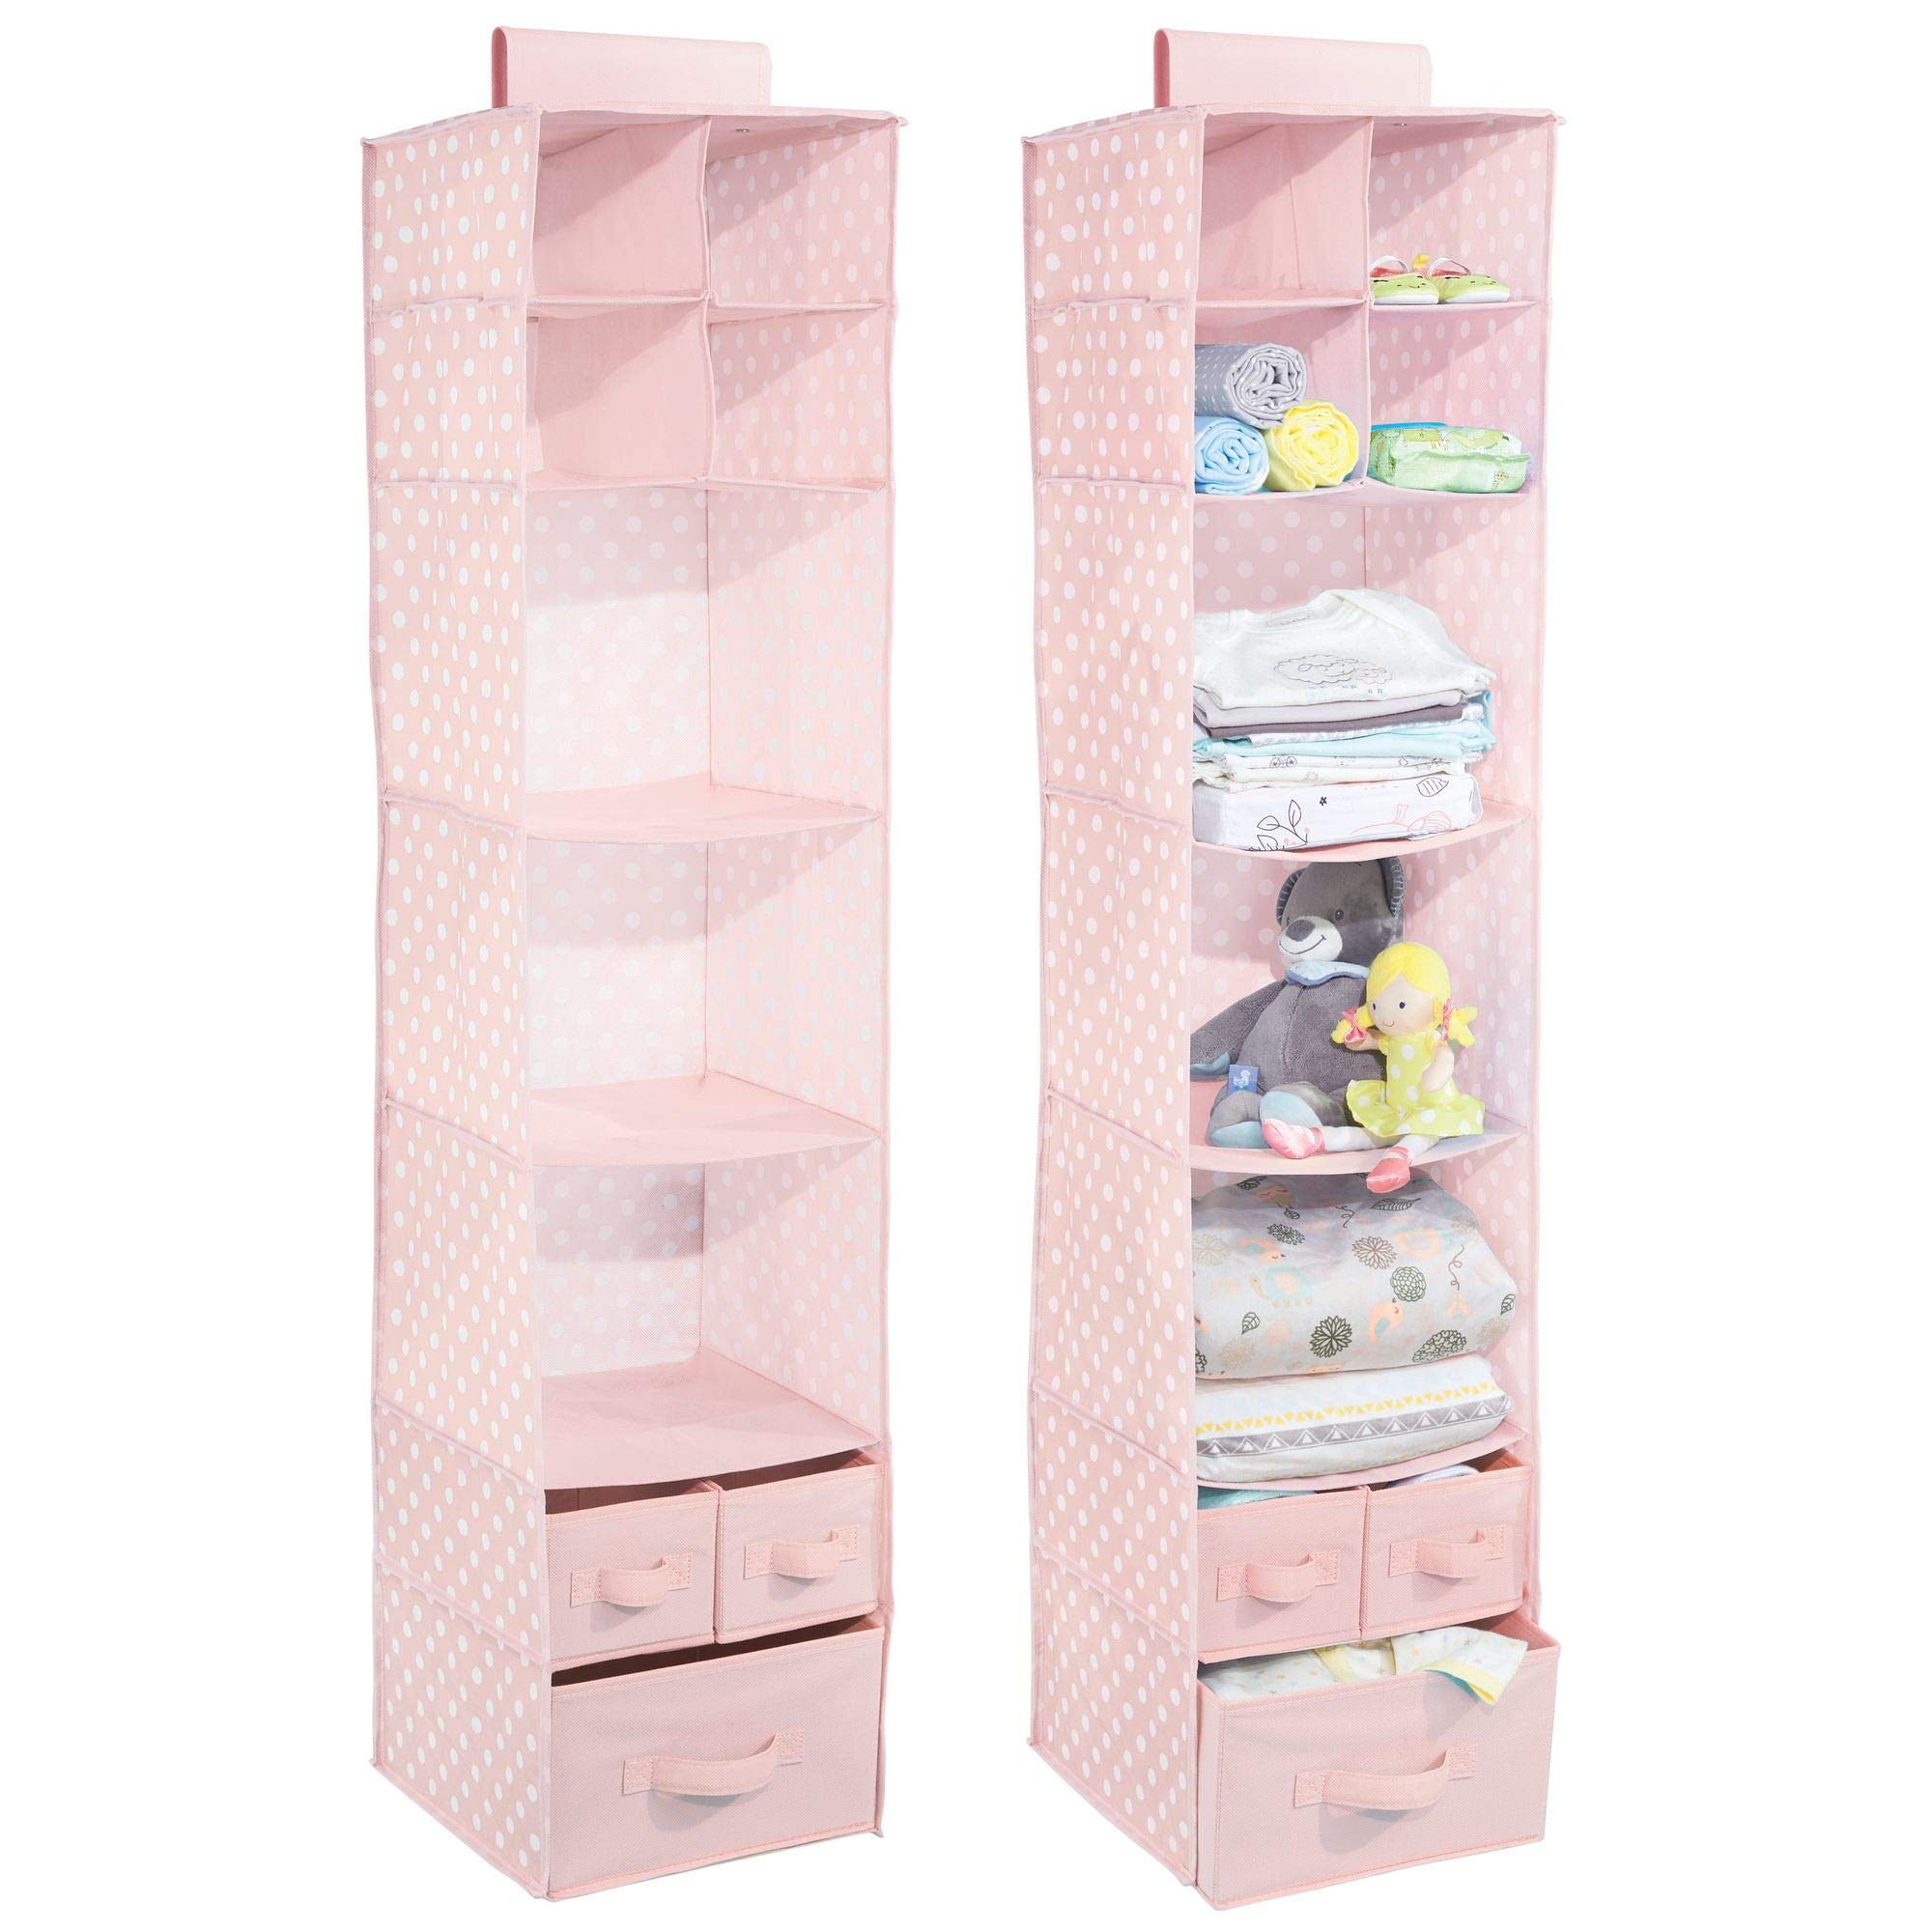 mDesign Soft Fabric Over Closet Rod Hanging Storage Organizer with 7 Shelves and 3 Removable Drawers for Children's Bedrooms or Nursery - 2 Pack, Polka Dot Pattern, Pink with White Dots